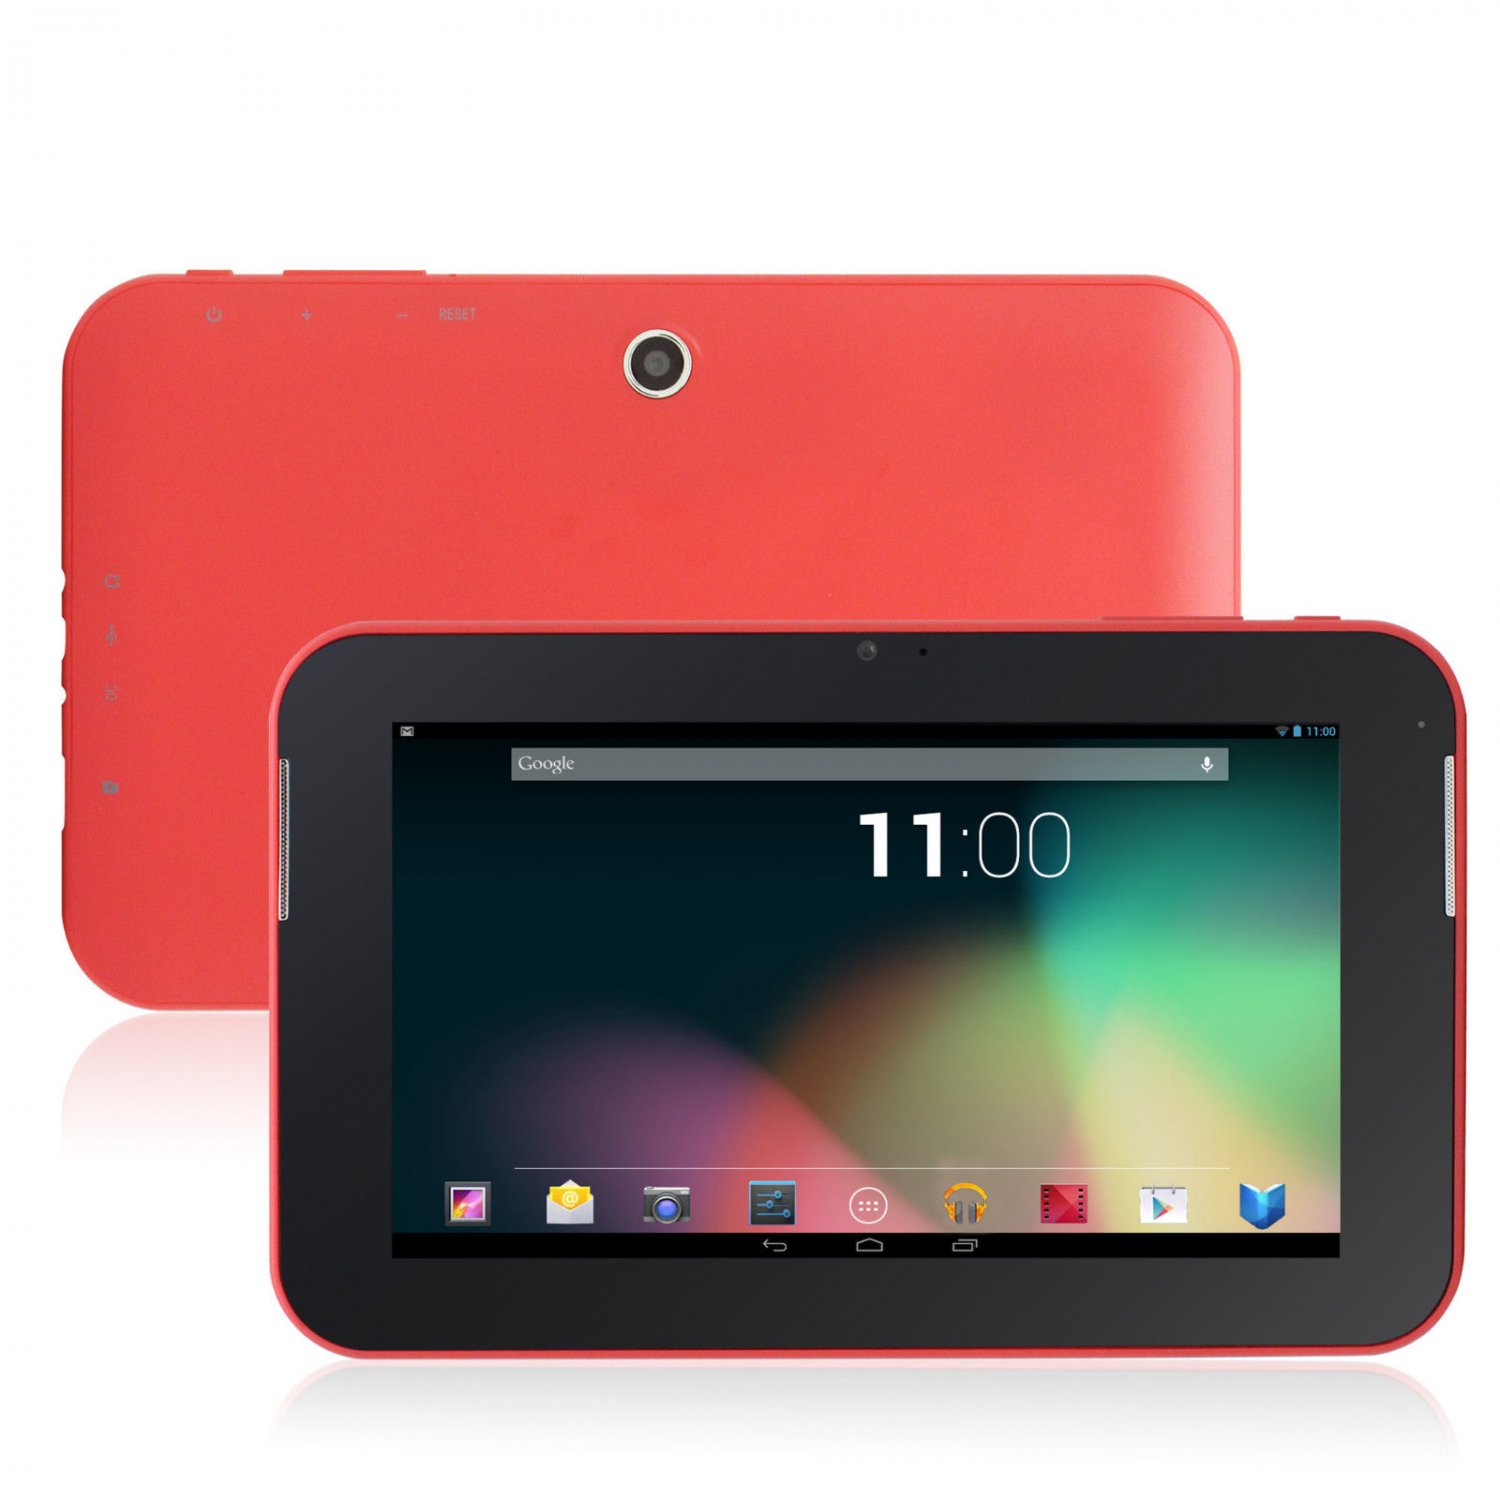 Dual Core Google Android 4.2 Tablet PC - Red (Android 4.2)